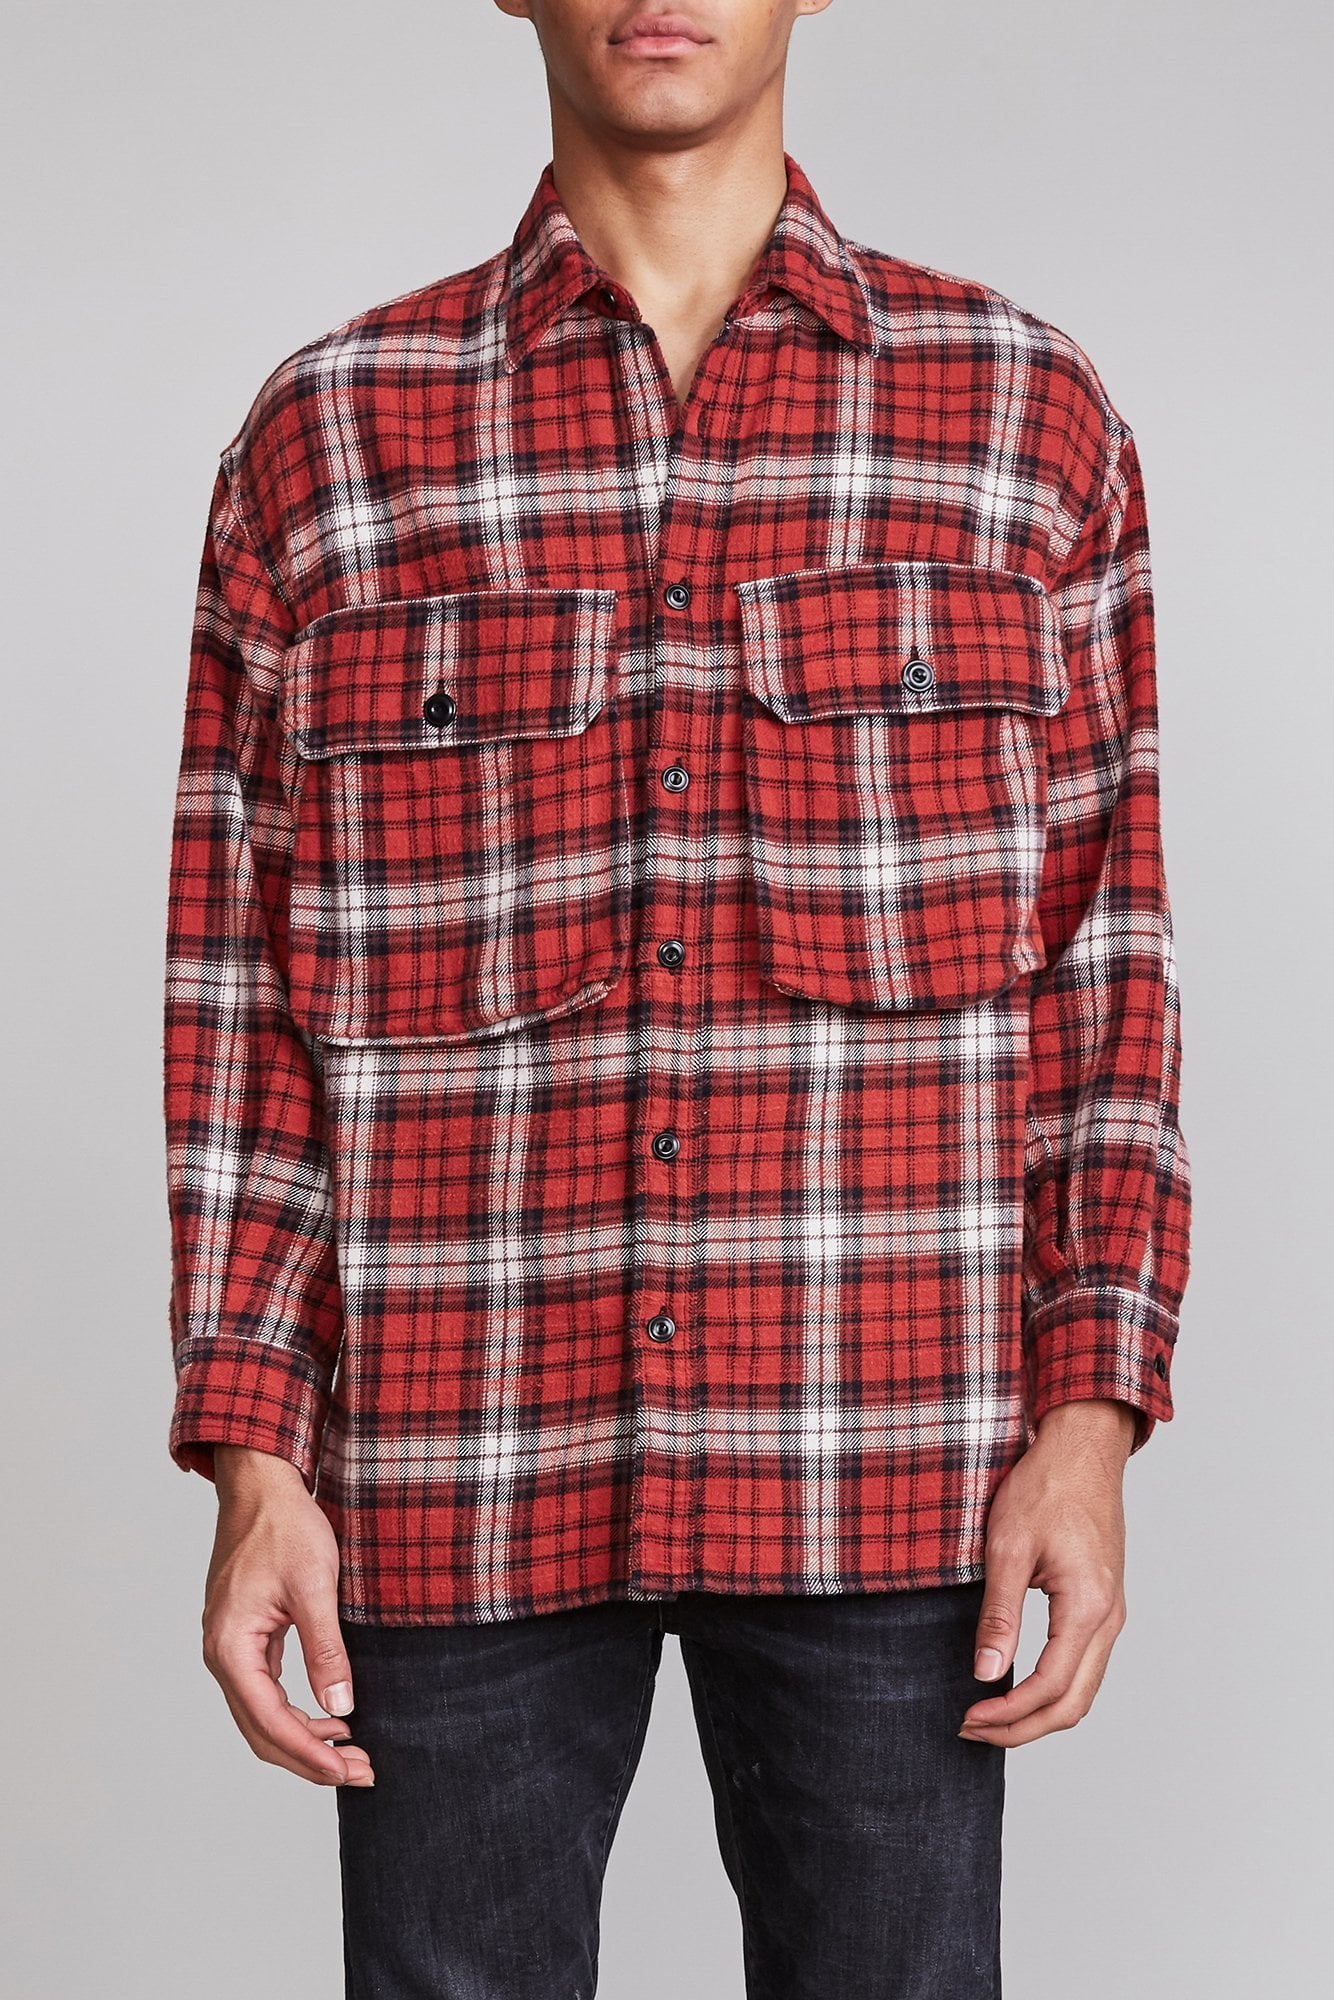 Oversized Shirt - Red Plaid